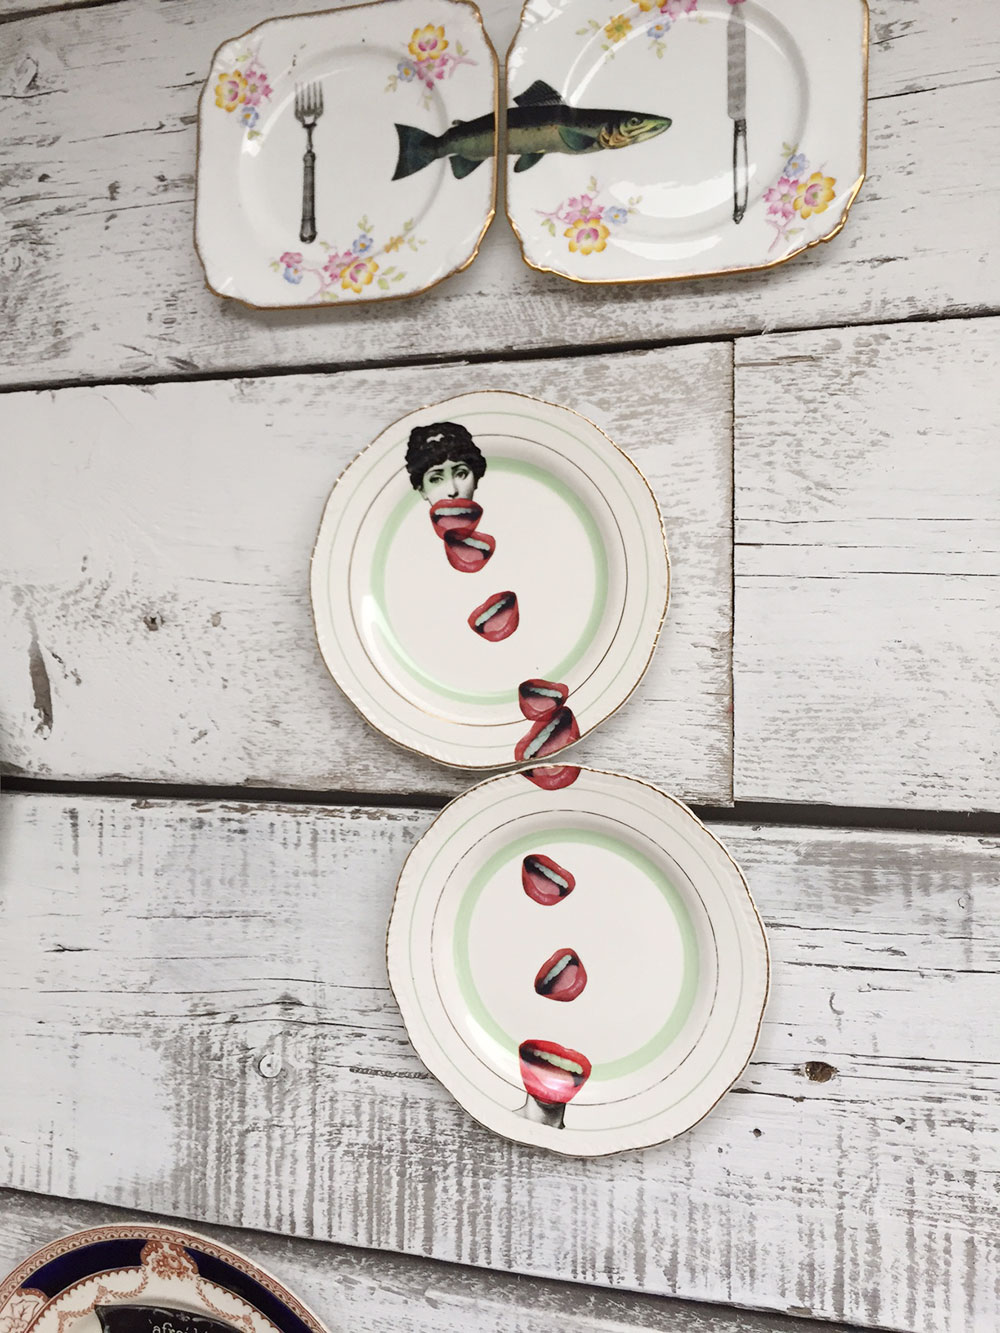 10 Kitchen And Home Decor Items Every 20 Something Needs: Artist Residence London